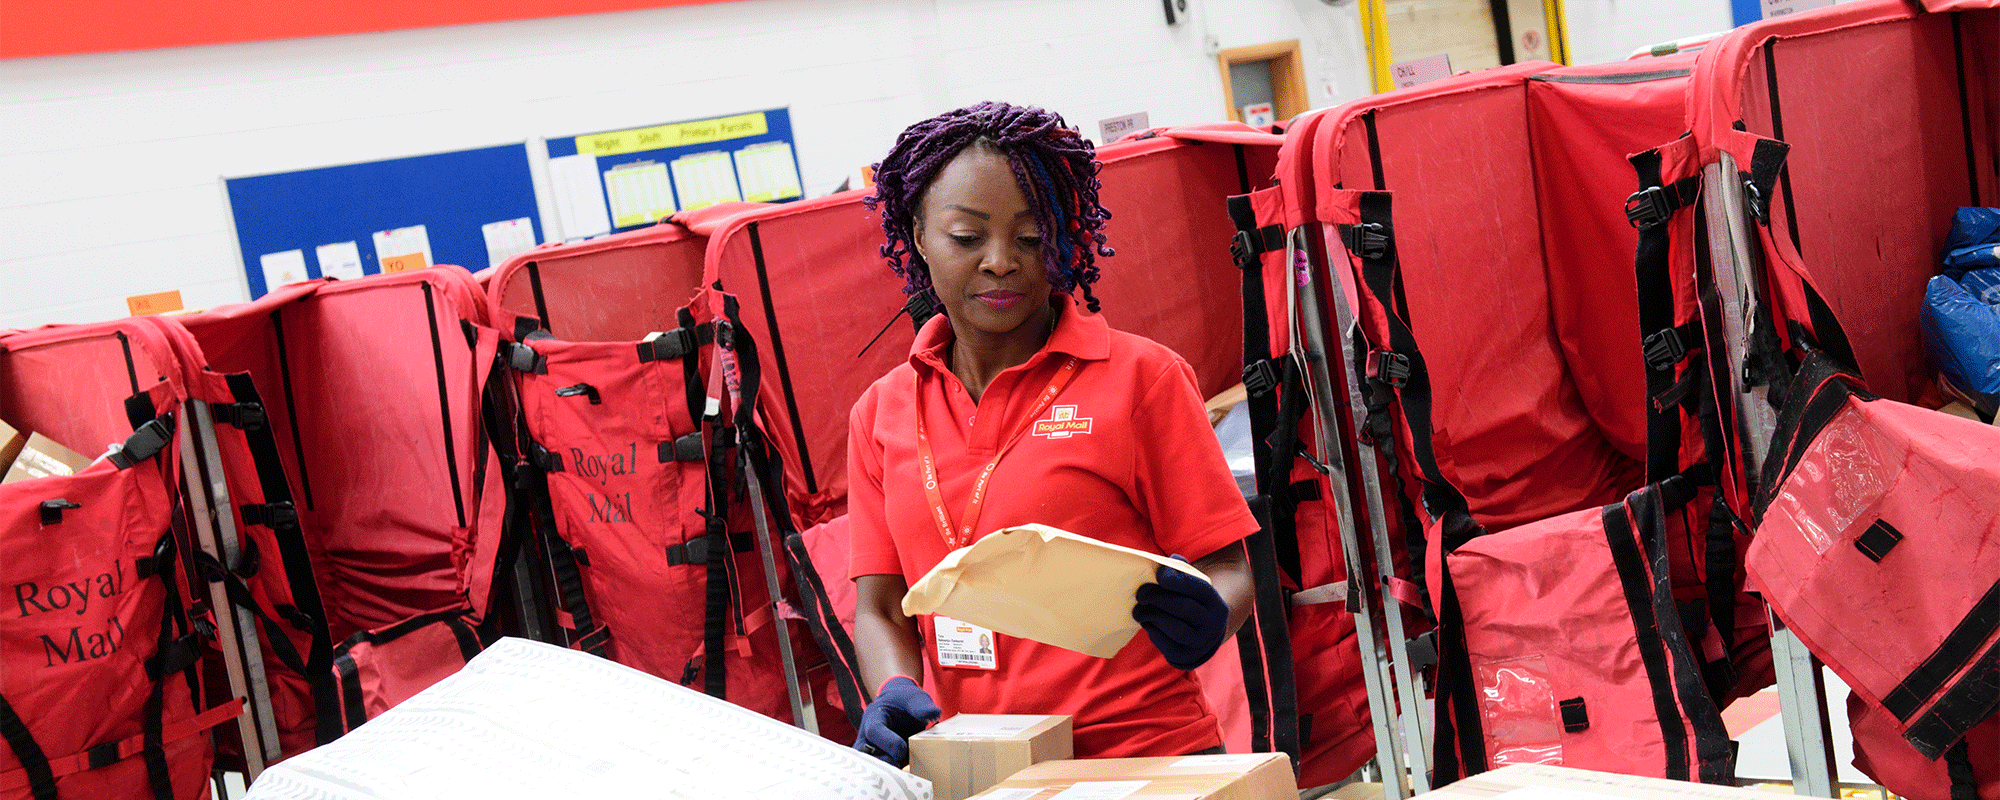 Royal Mail's Employee